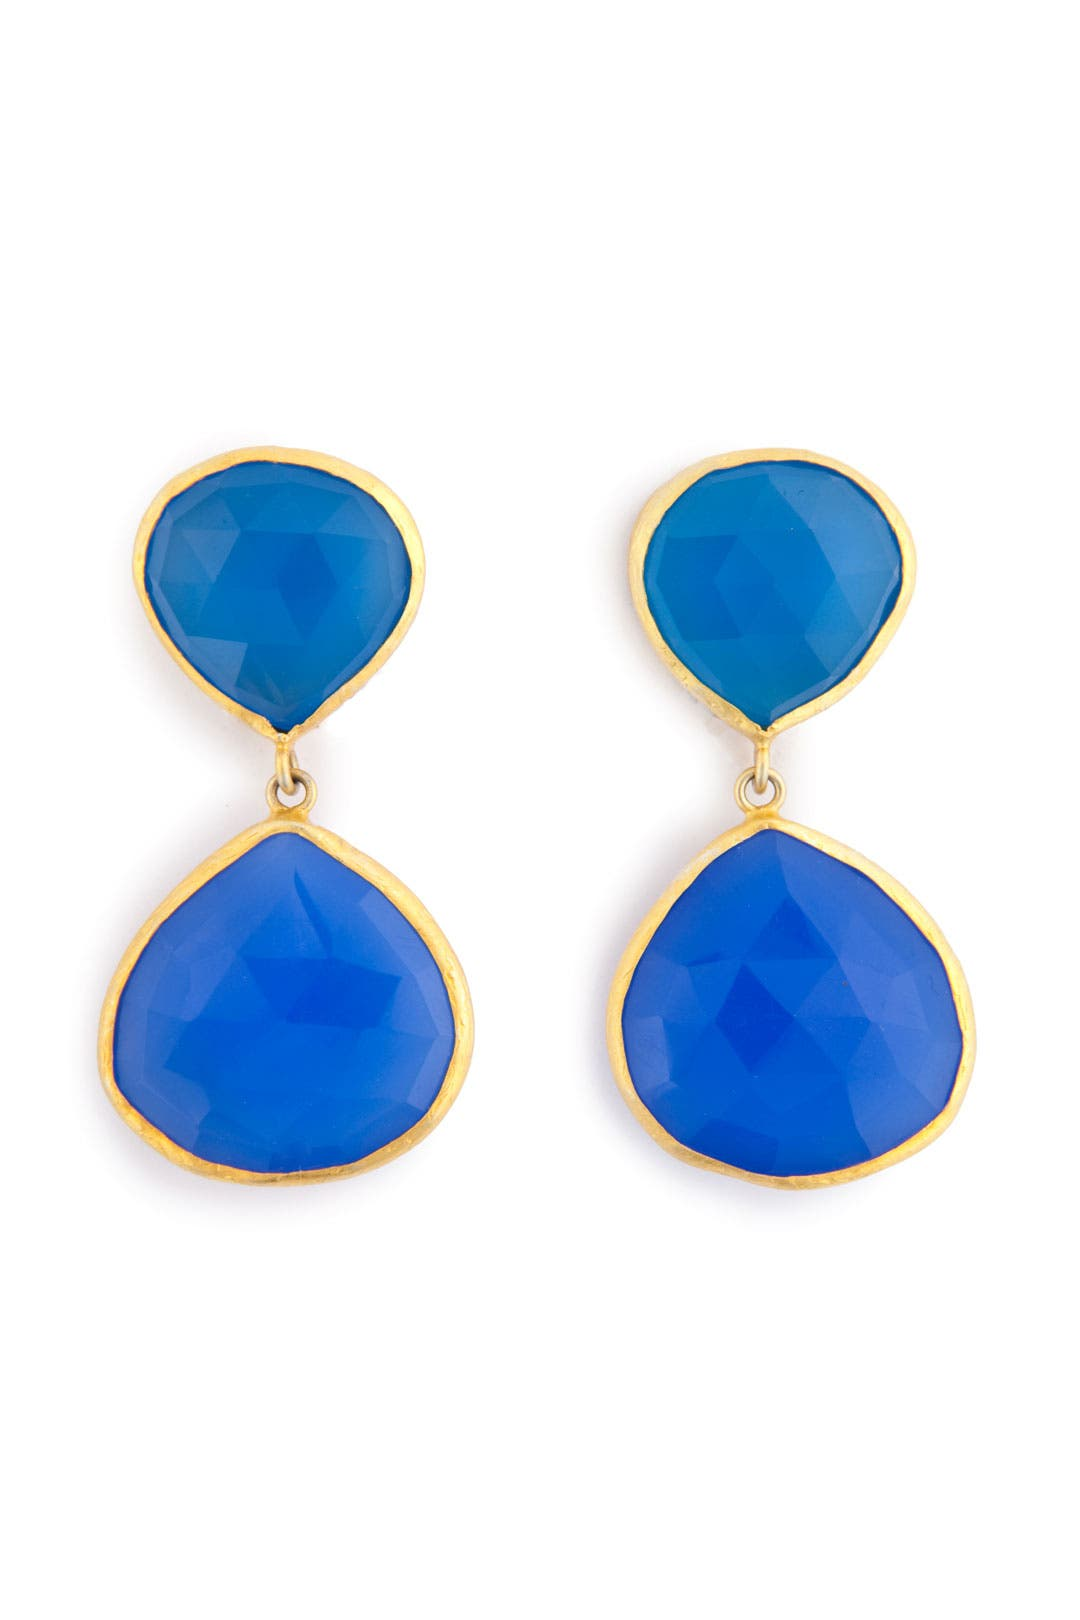 Cerulean Droplet Earrings by Coralia Leets